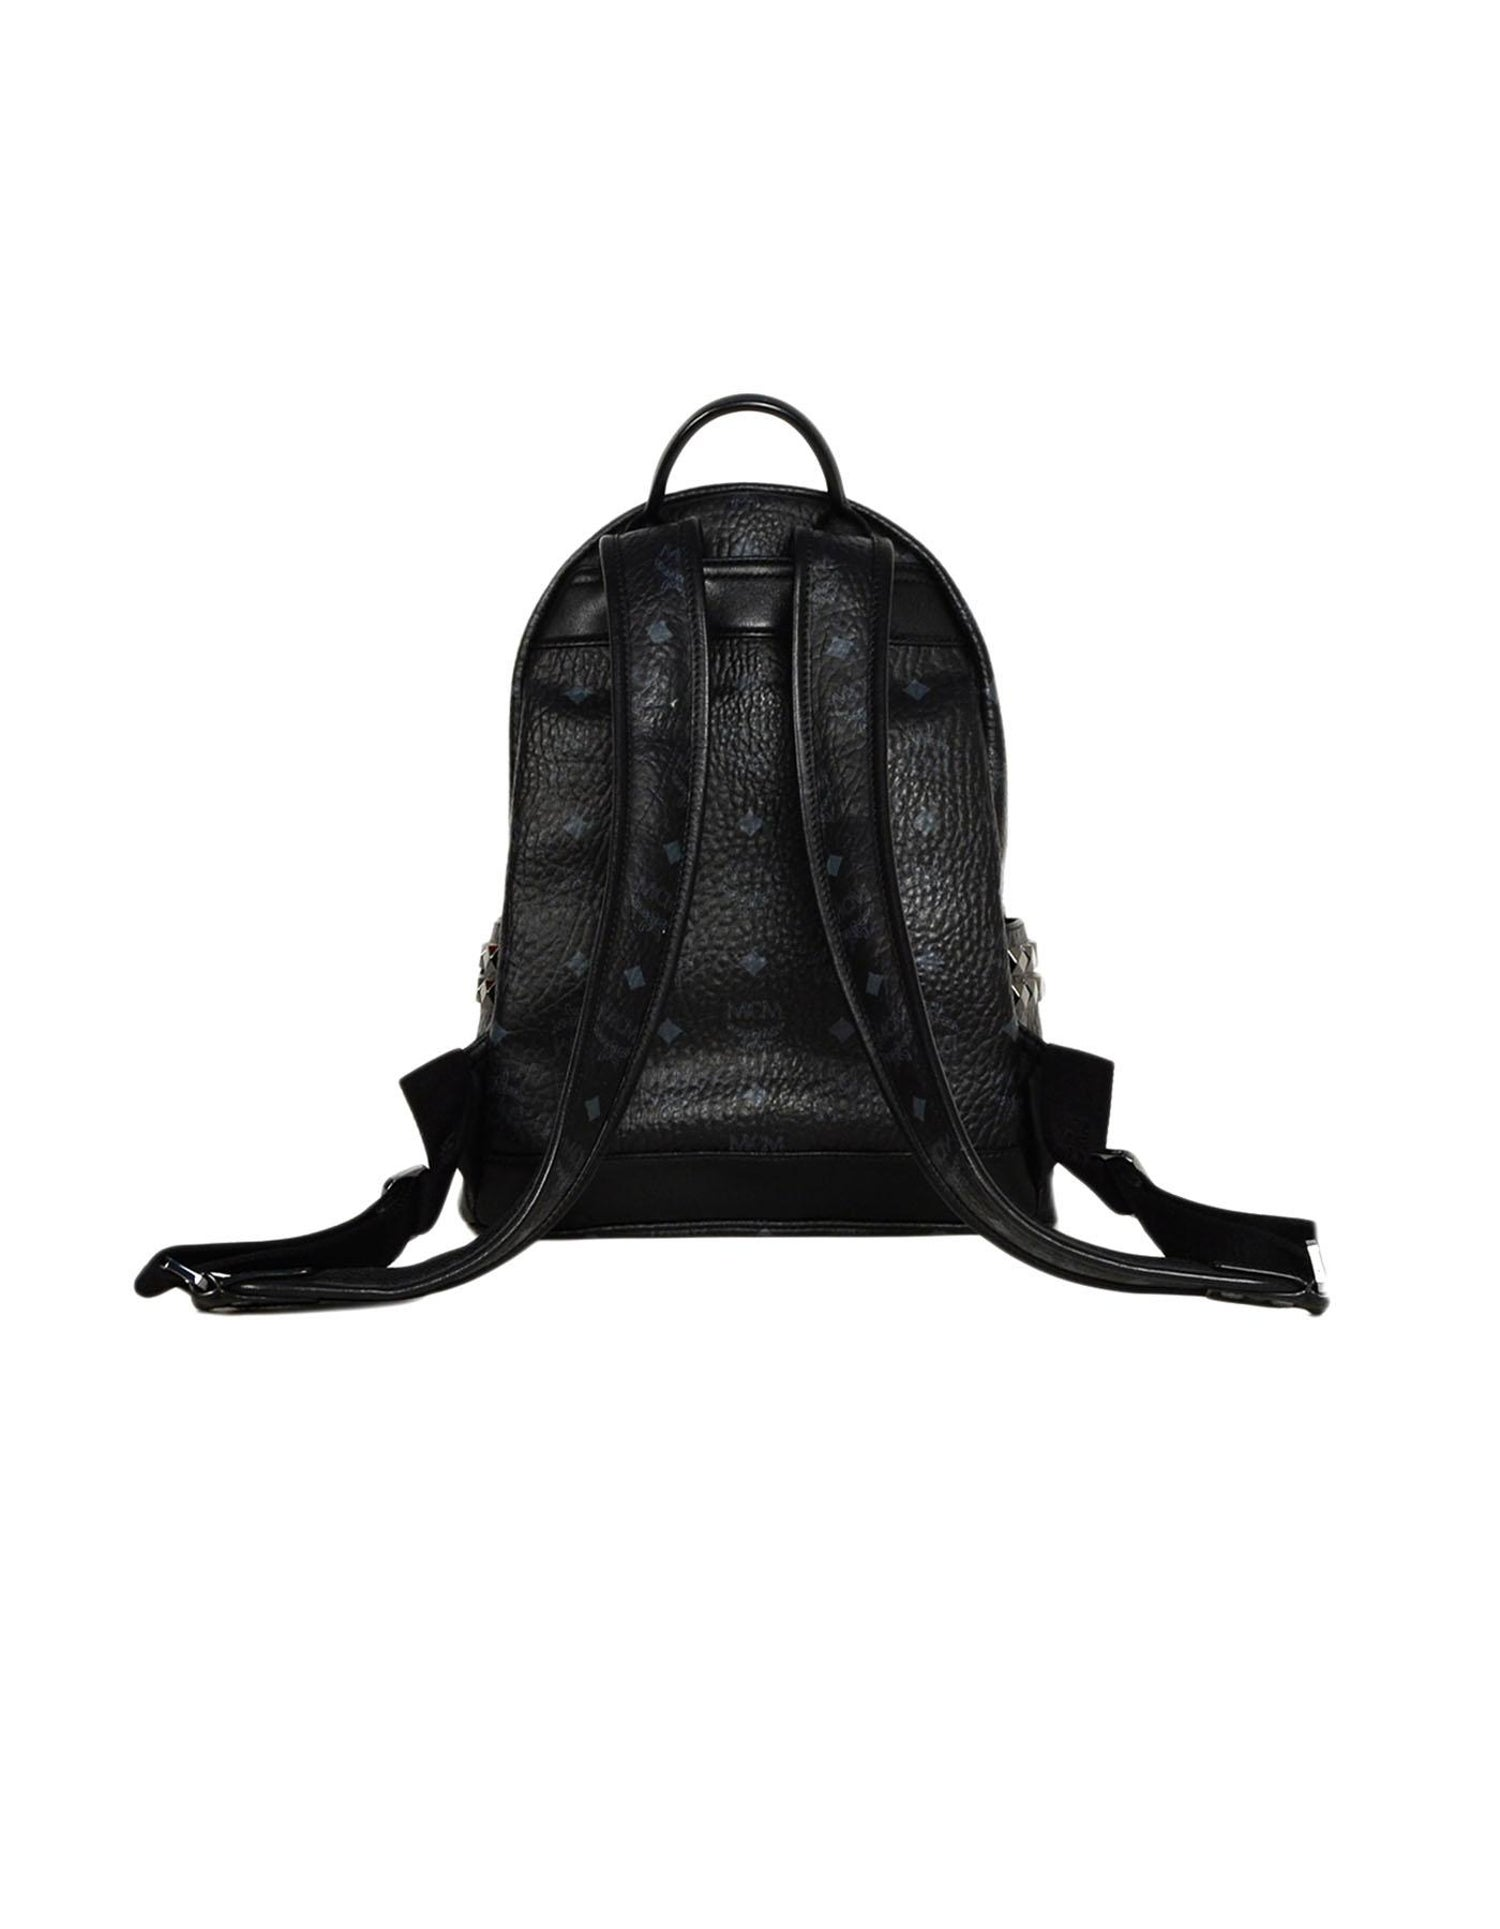 bd87b9088c33a Mcm Stark Small Side Stud Backpack Black | Building Materials ...